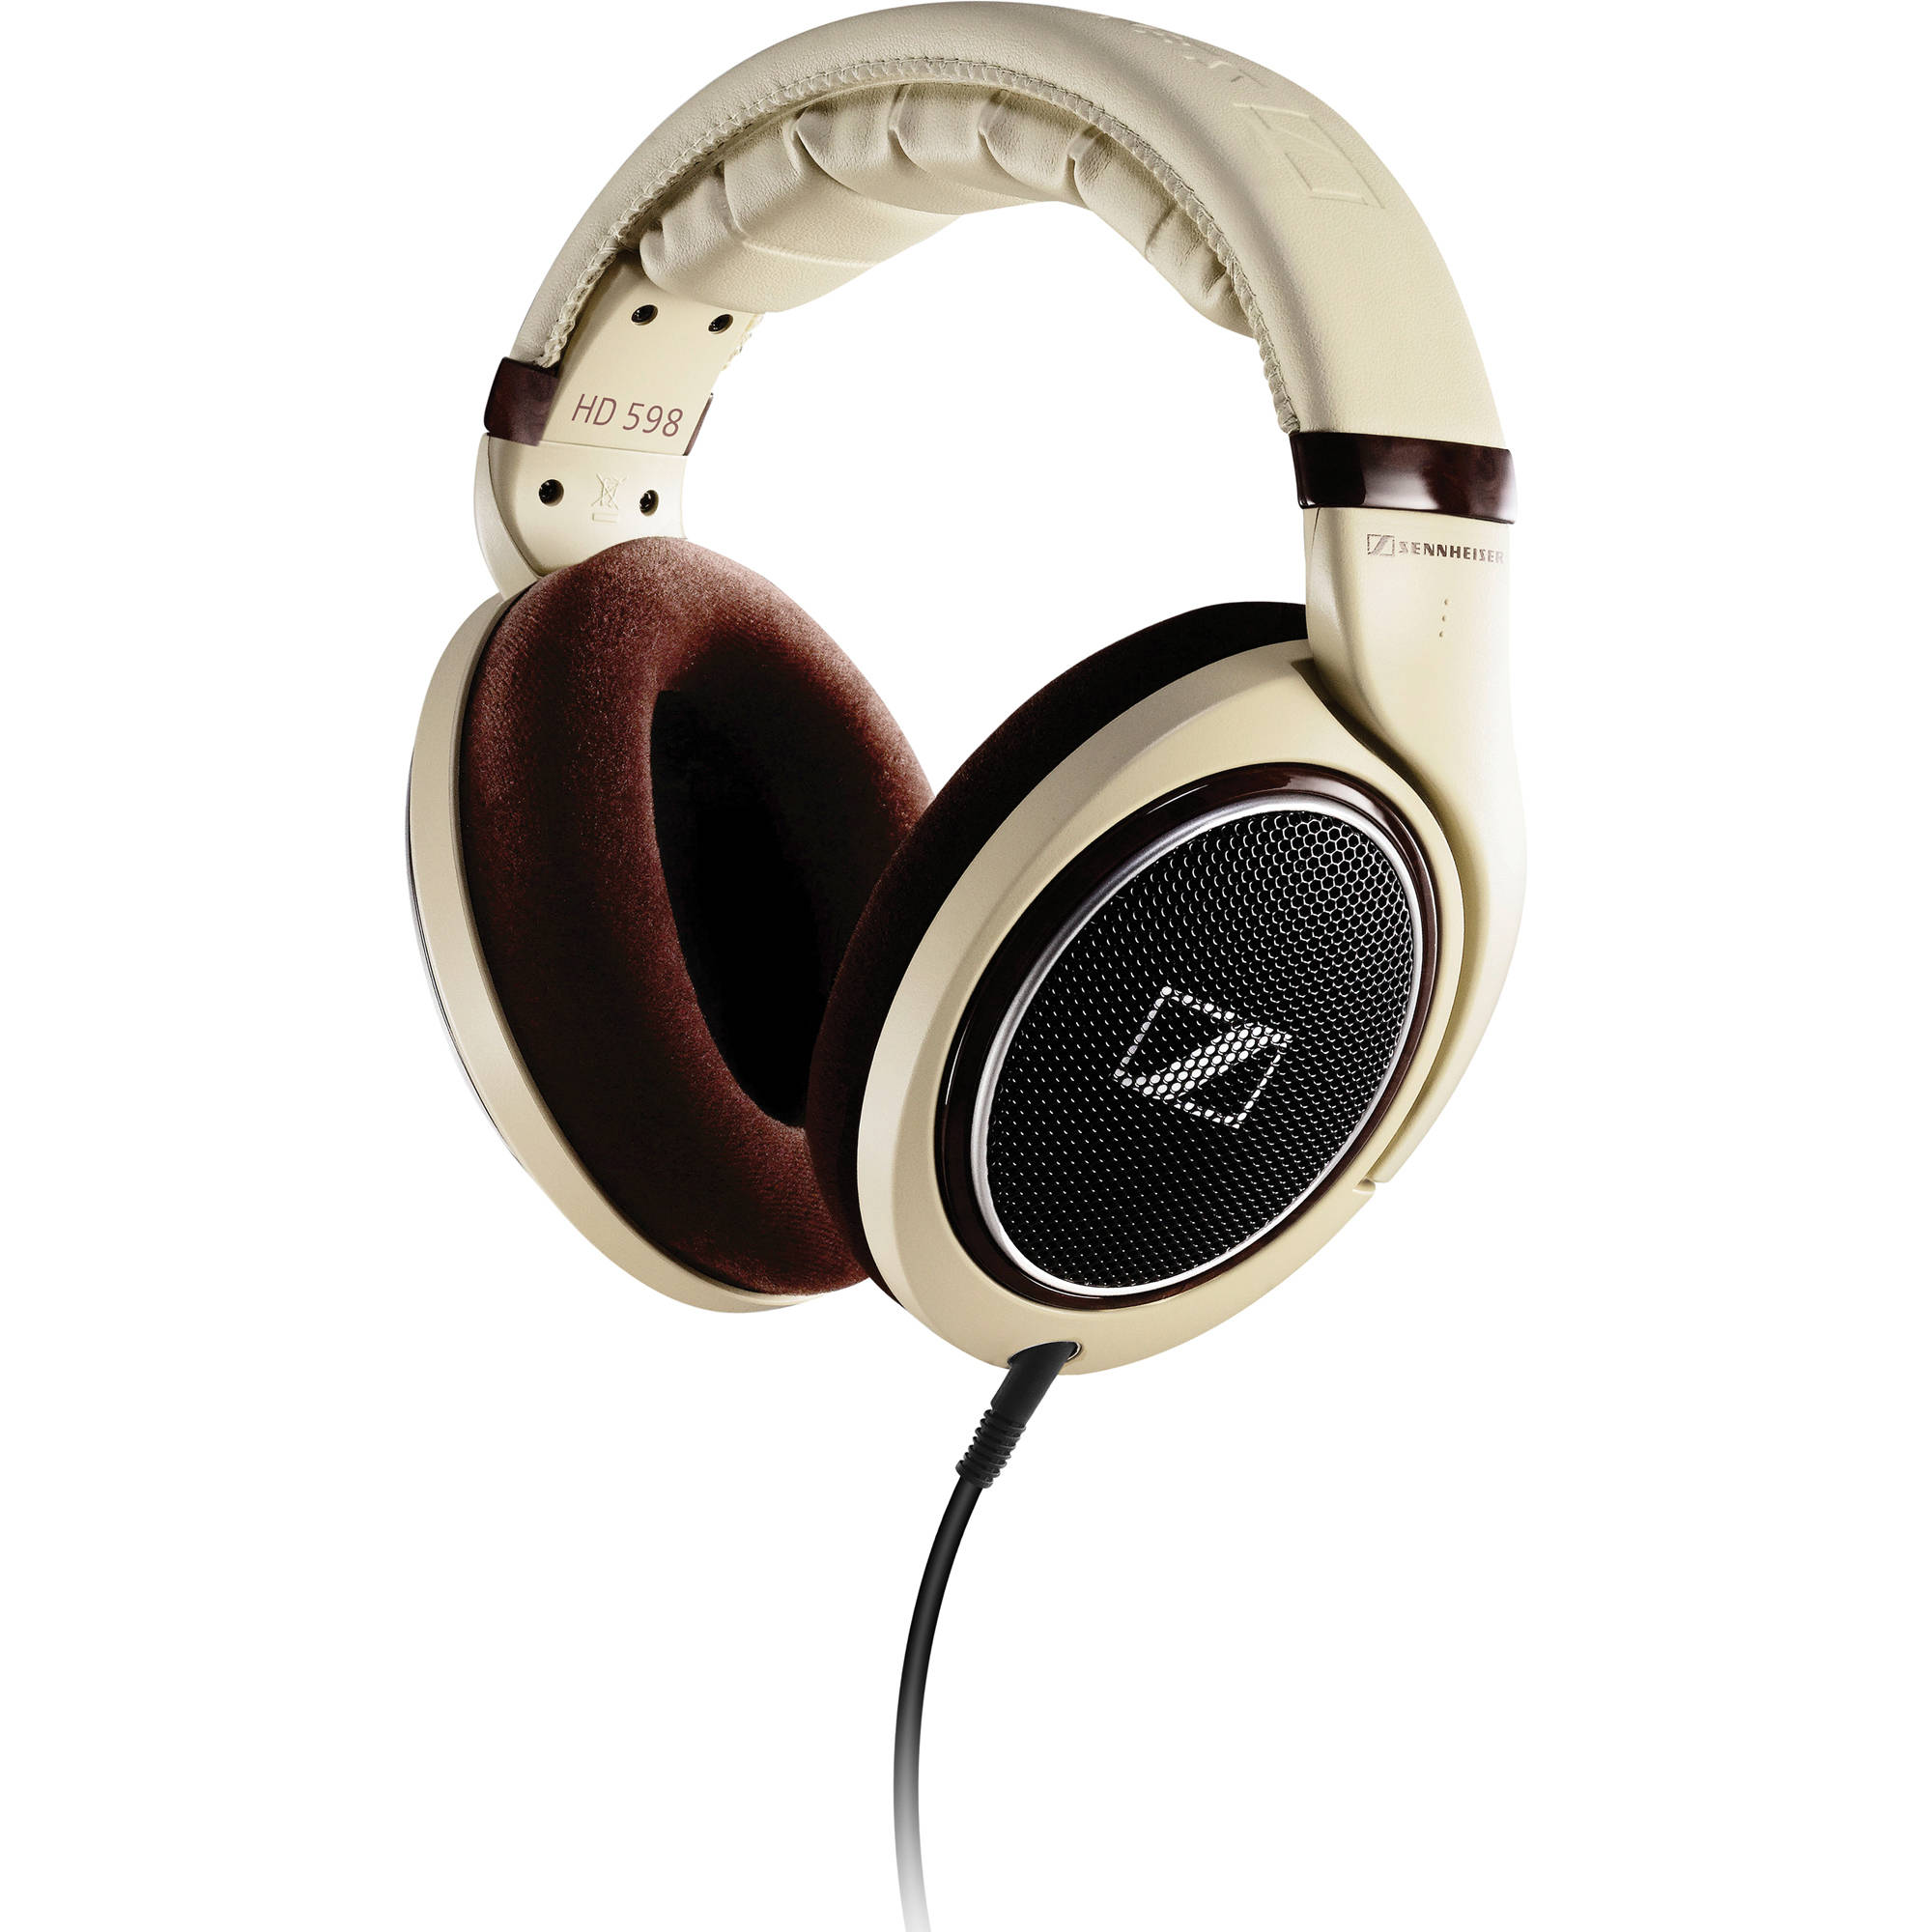 Sennheiser HD 598 Open-Back Around-Ear Stereo Headphones